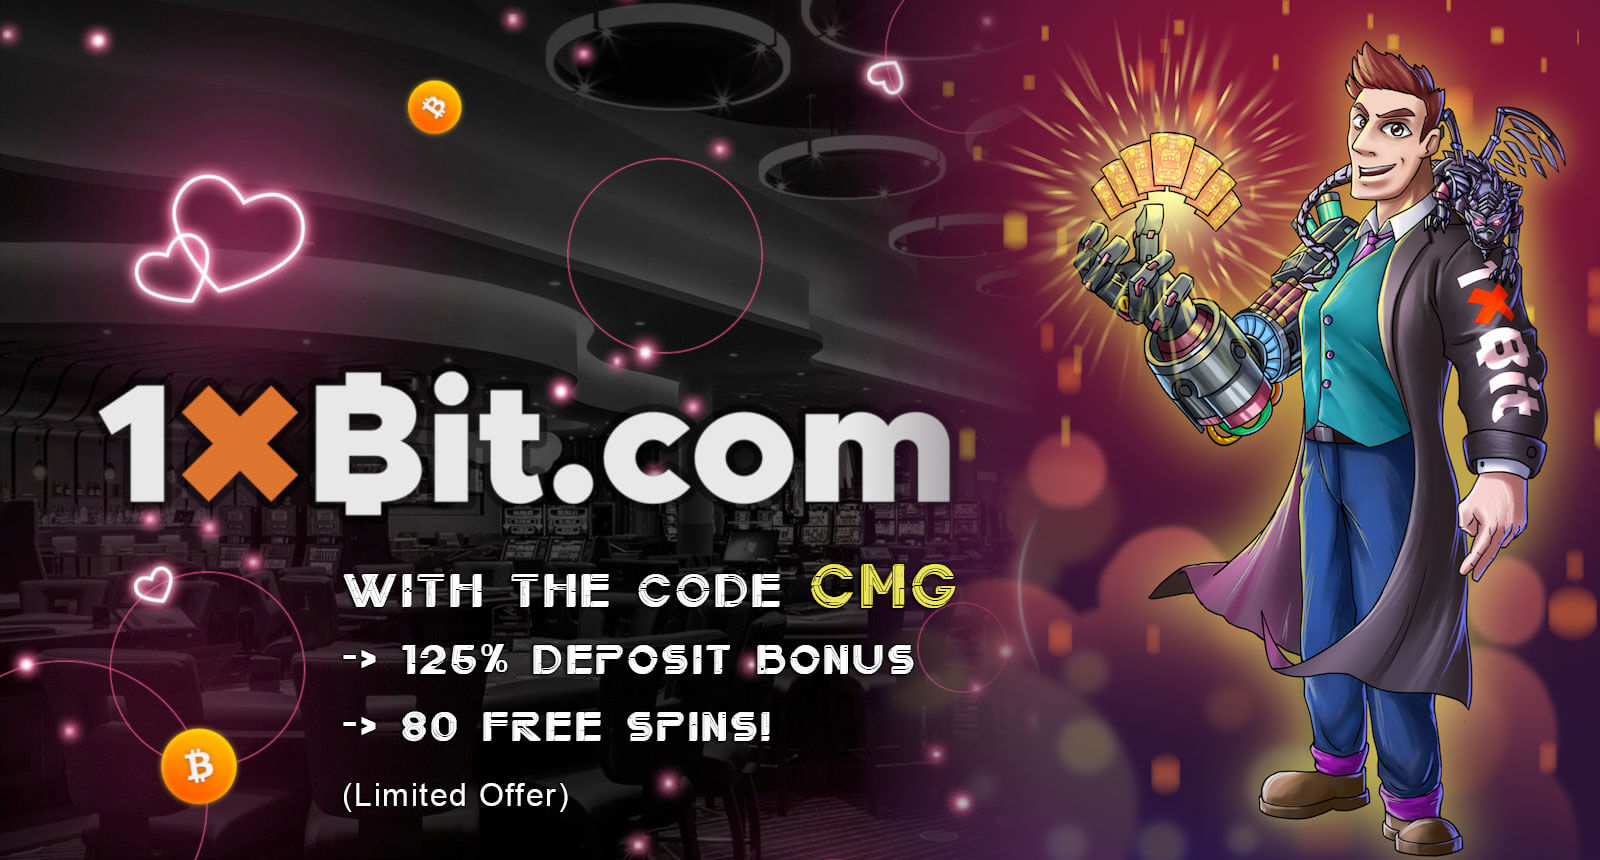 Free Spins Giveaway with 1xBit using the code CMG!